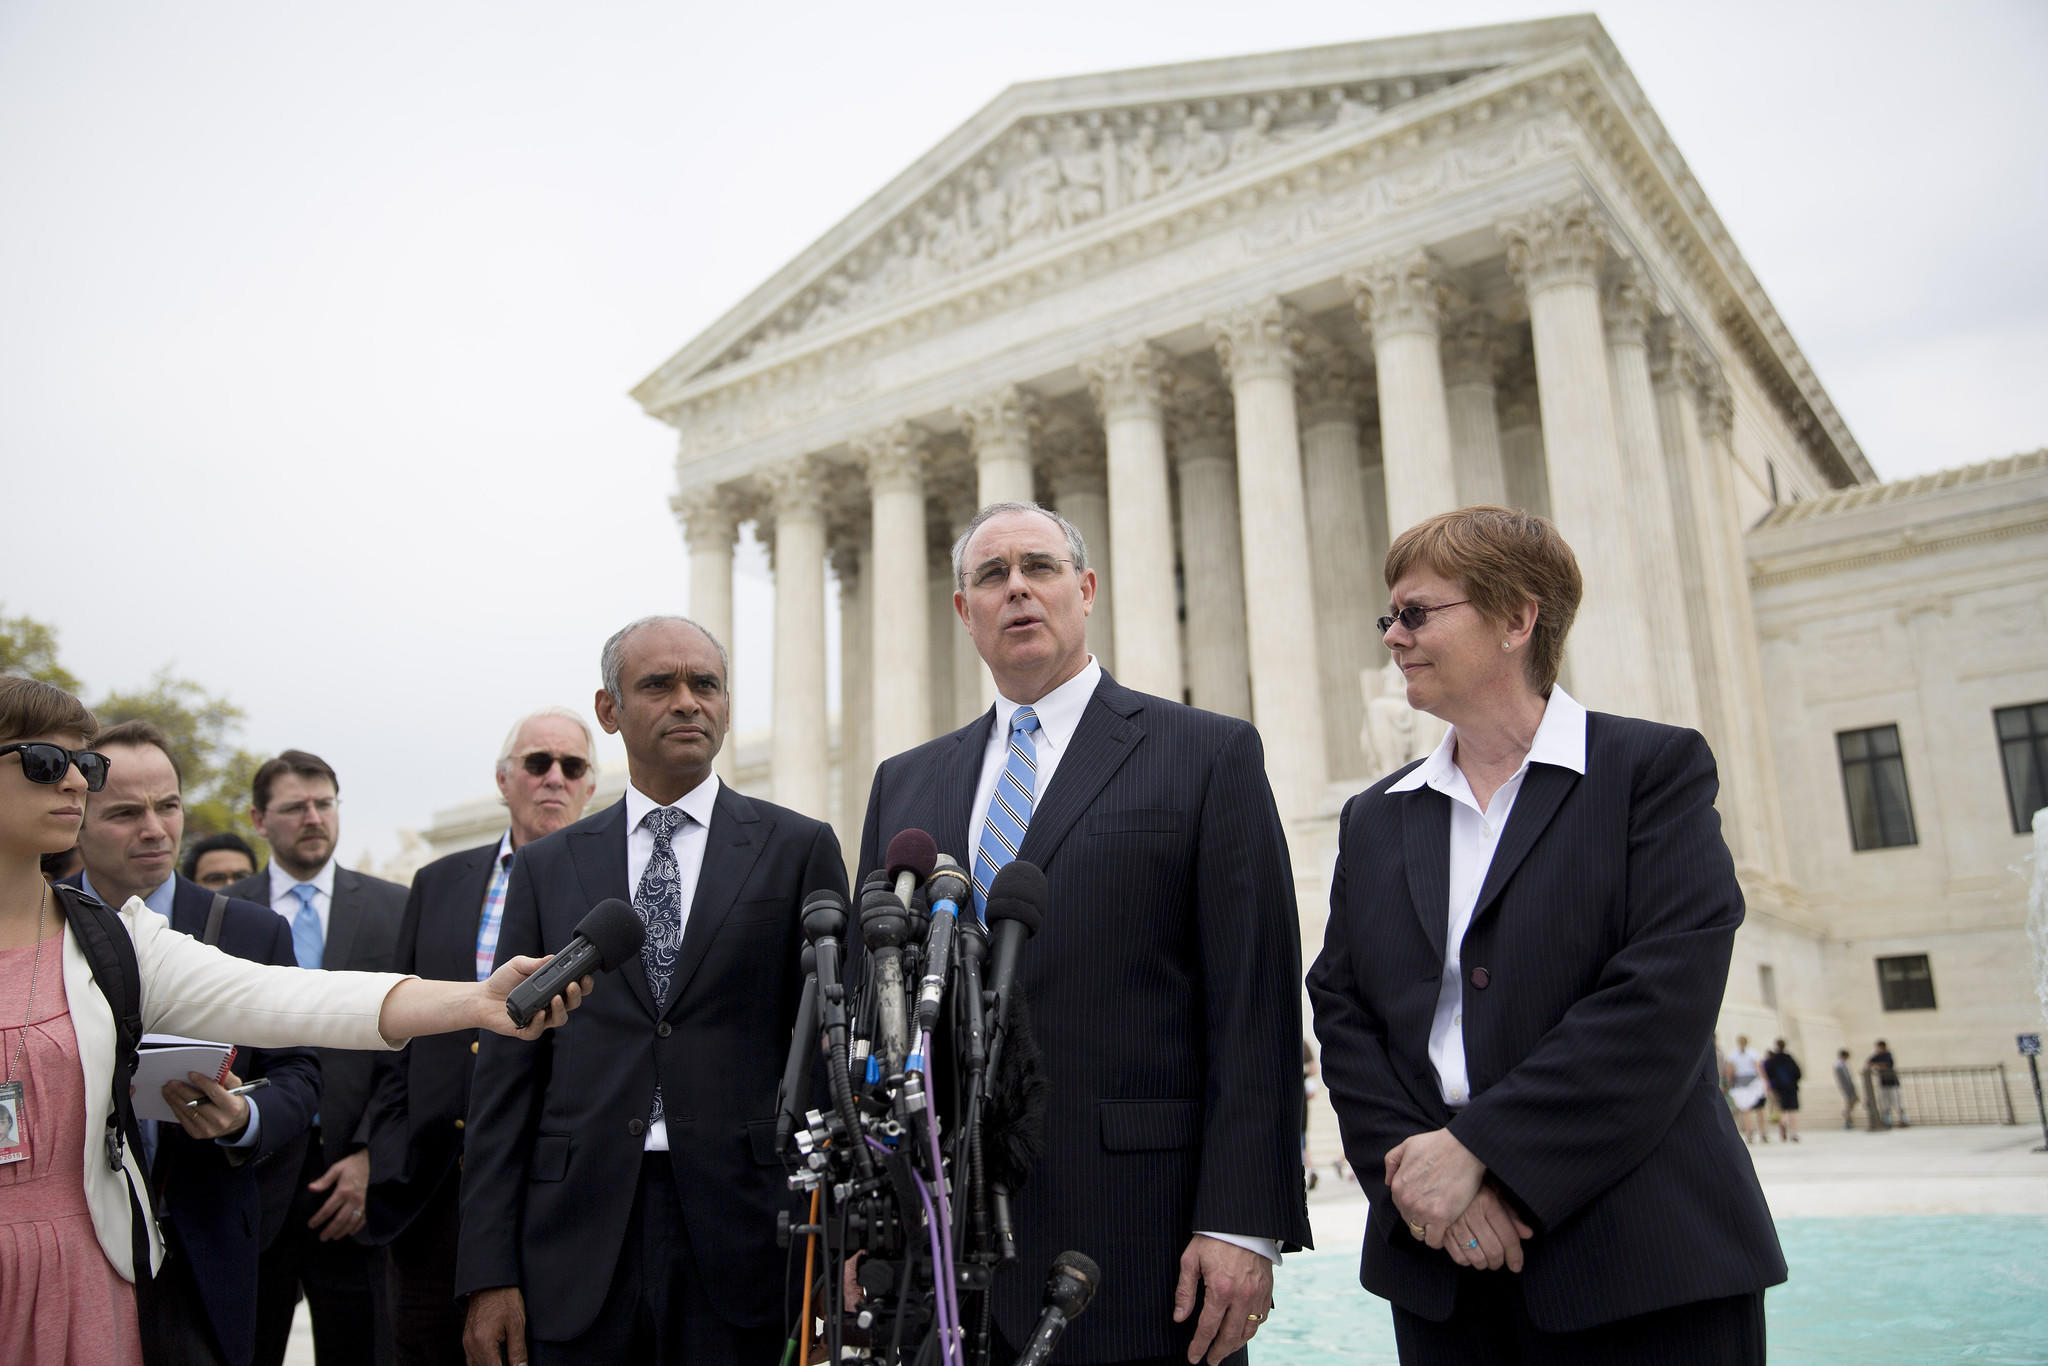 David Frederick, center, outside counsel with Aereo Inc., speaks to the media with Chief Executive Chet Kanojia, left, and General Counsel Brenda Cotter after the Supreme Court heard arguments in the broadcasters' copyright-infringement lawsuit against Aereo.